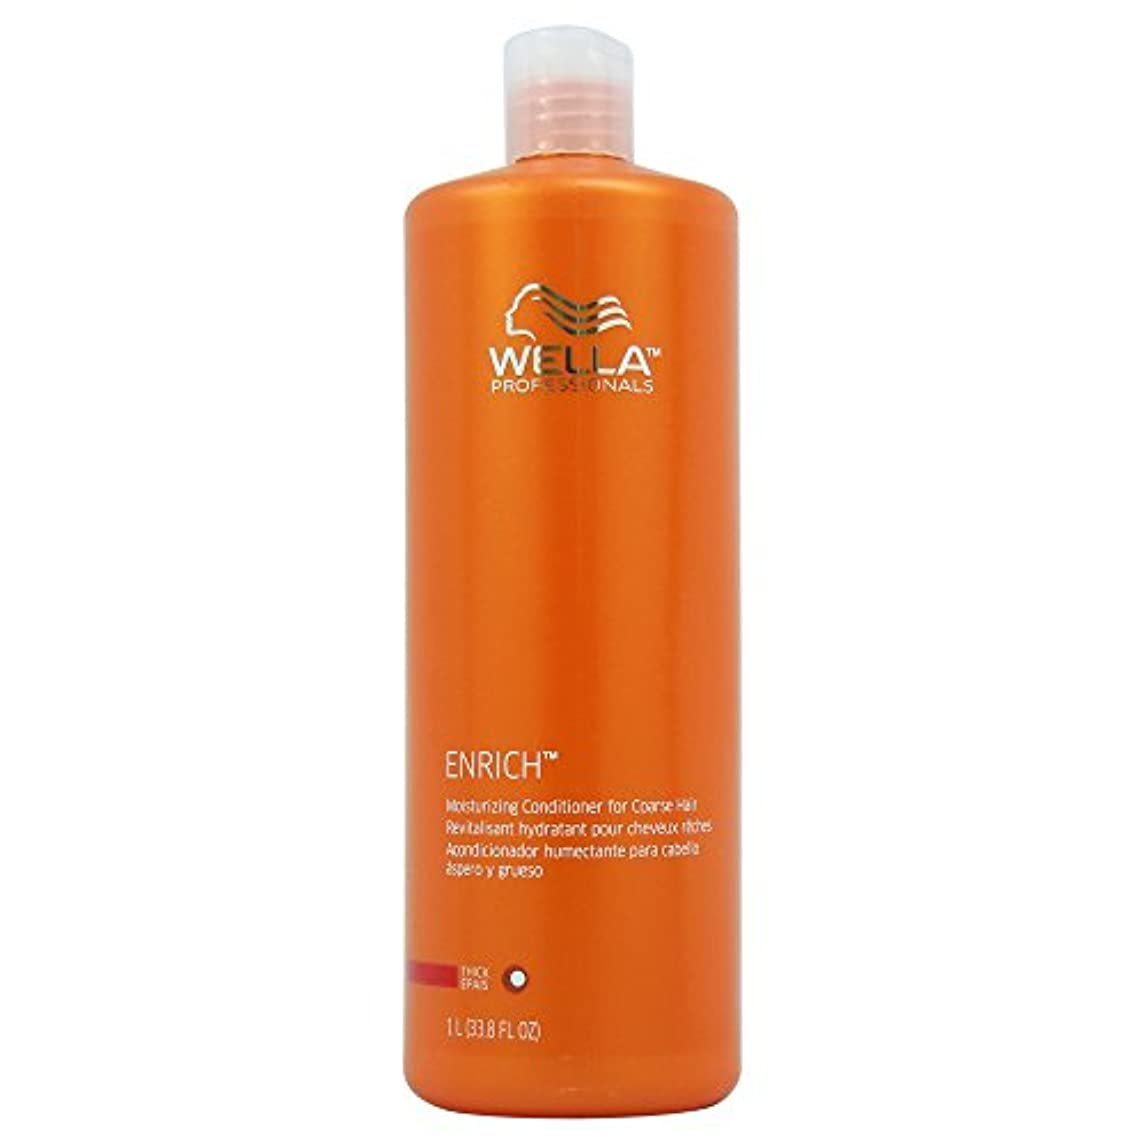 クリープ人差し指農民Wella Enriched Moisturizing Conditioner for Coarse Hair for Unisex, 33.8 Ounce by Wella